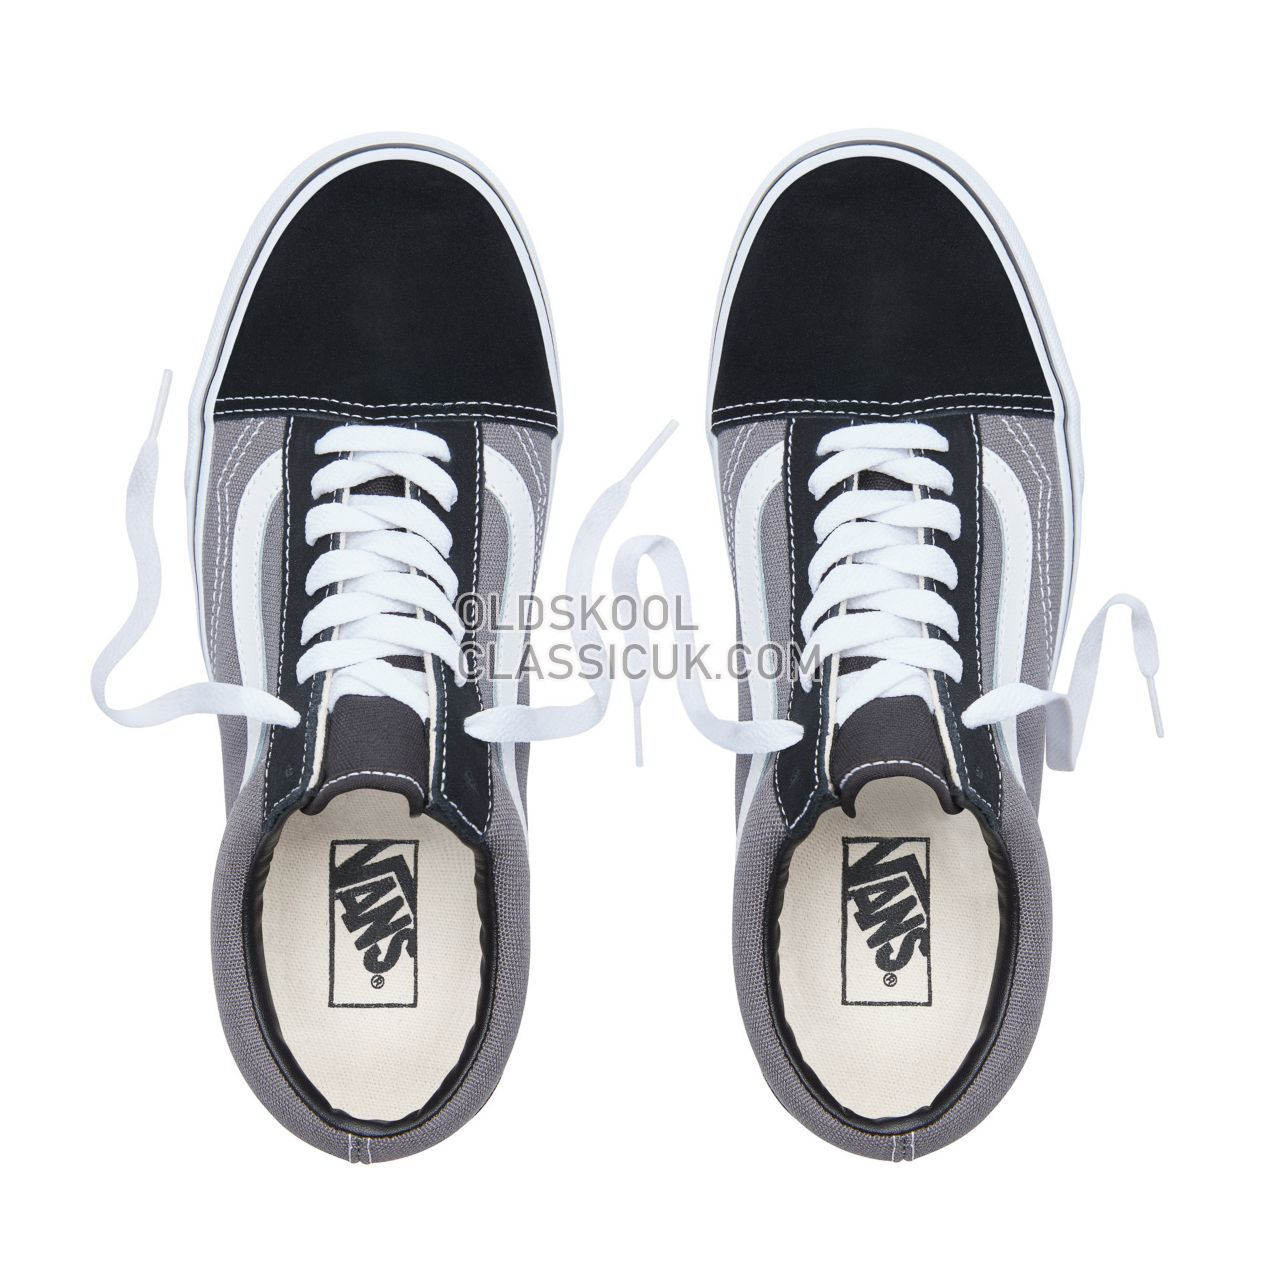 Vans Old Skool Sneakers Mens Womens Unisex Black/Pewter VKW6HR0 Shoes